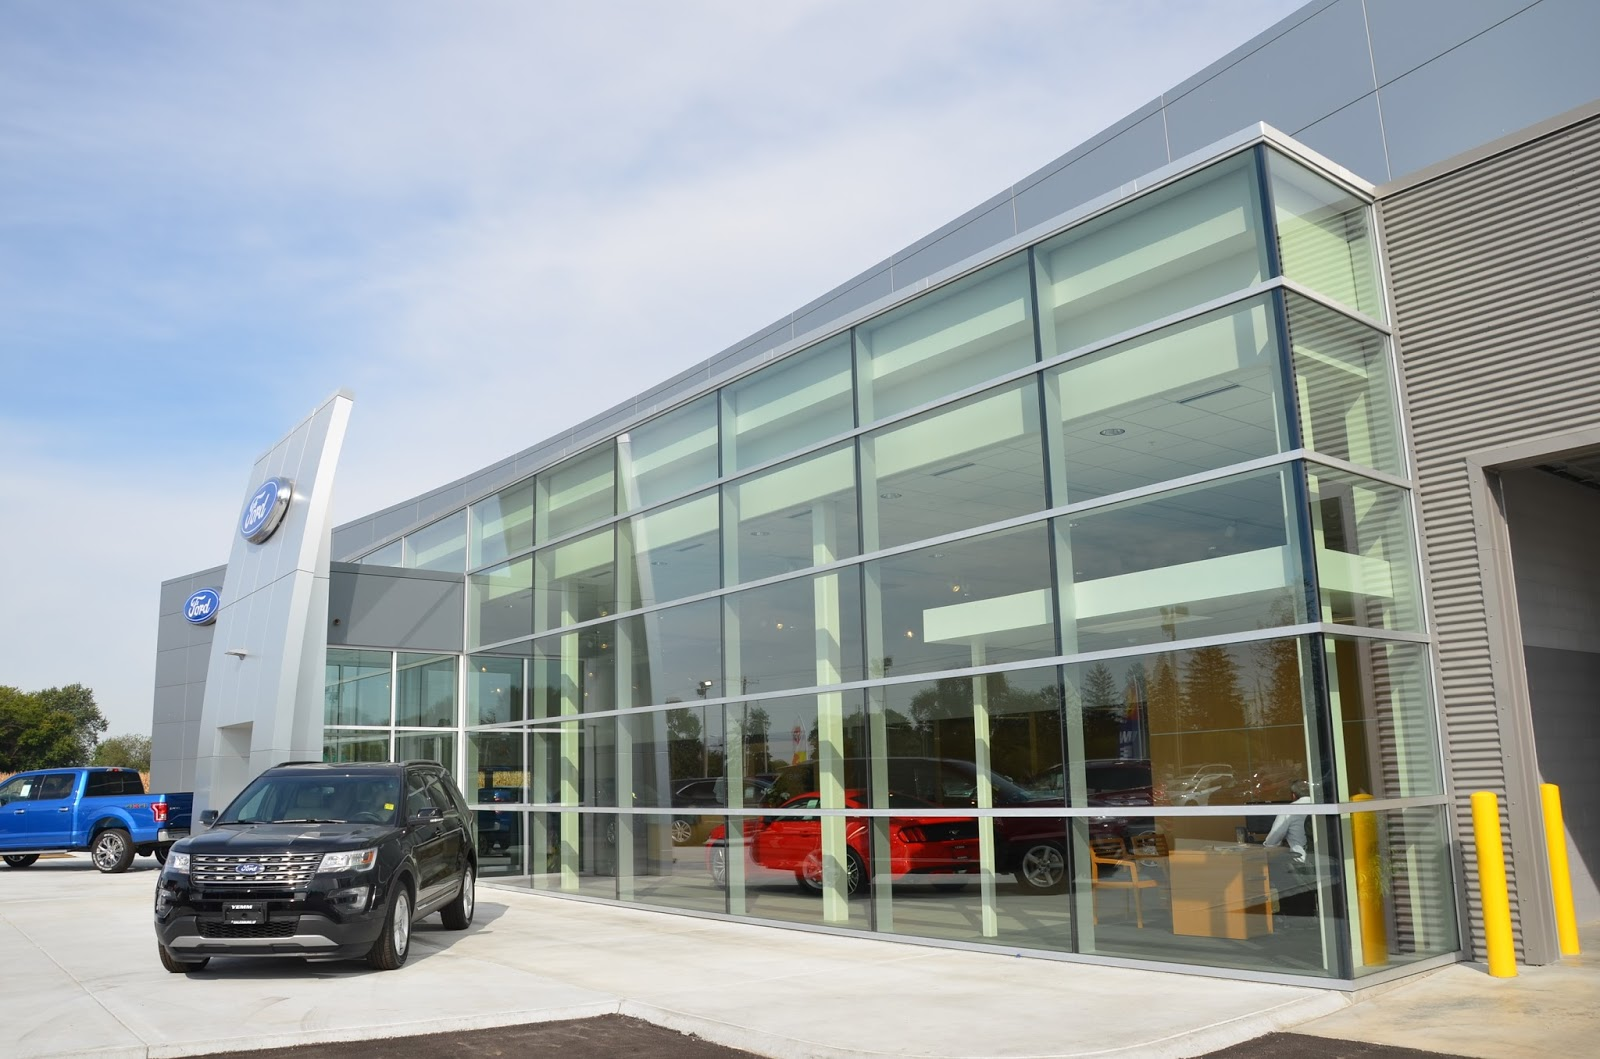 P.J. Hoerr, Inc.: Yemm Ford Dealership | Renovation/Addition - Galesburg, IL